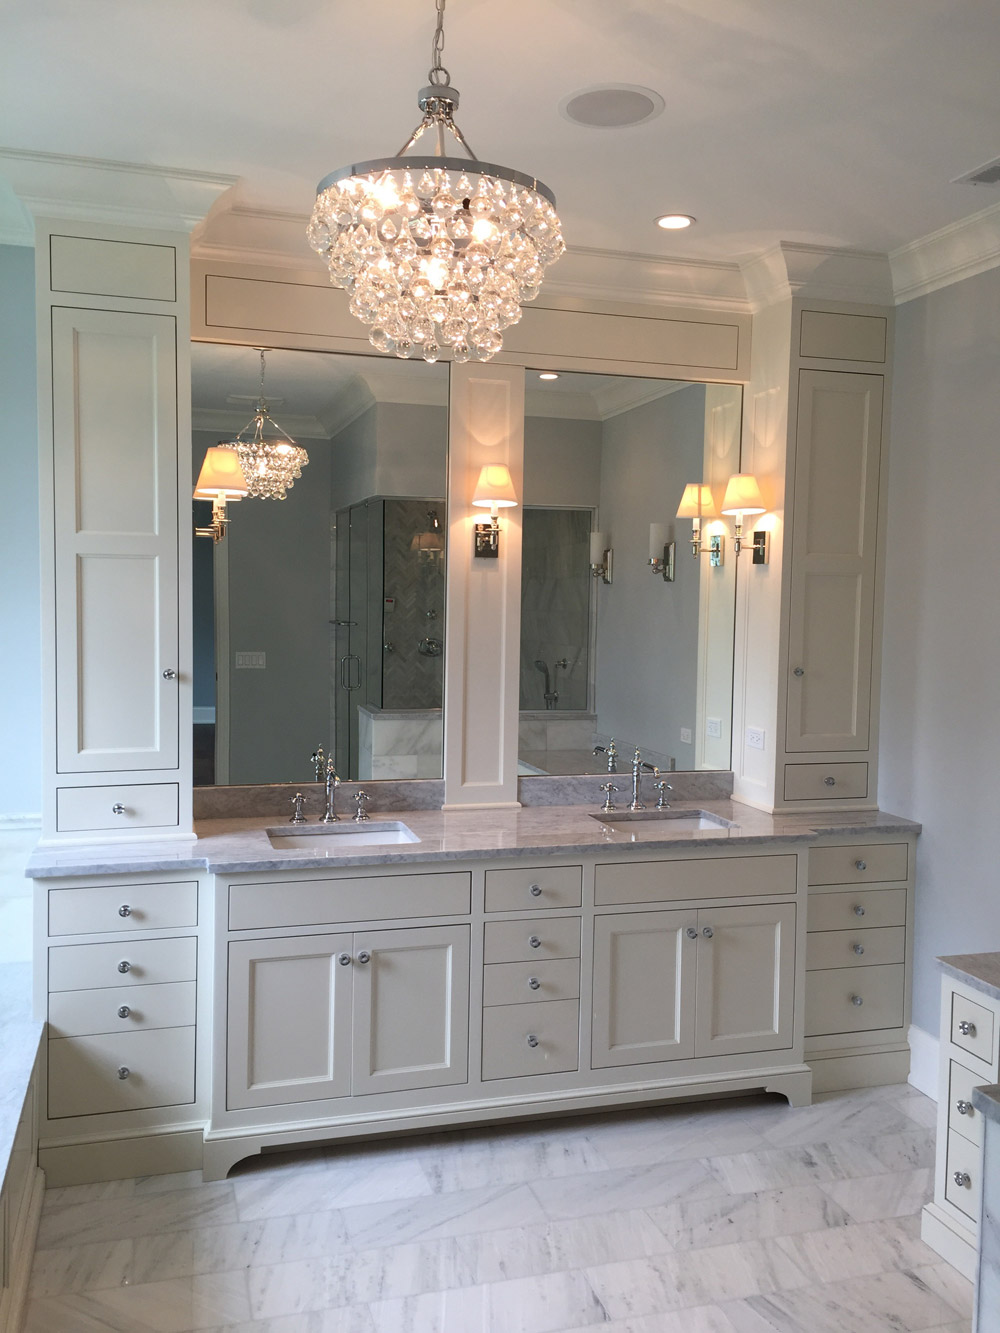 Custom Bathroom Vanity kitchen cabinets and bathroom vanity design | chicago closets